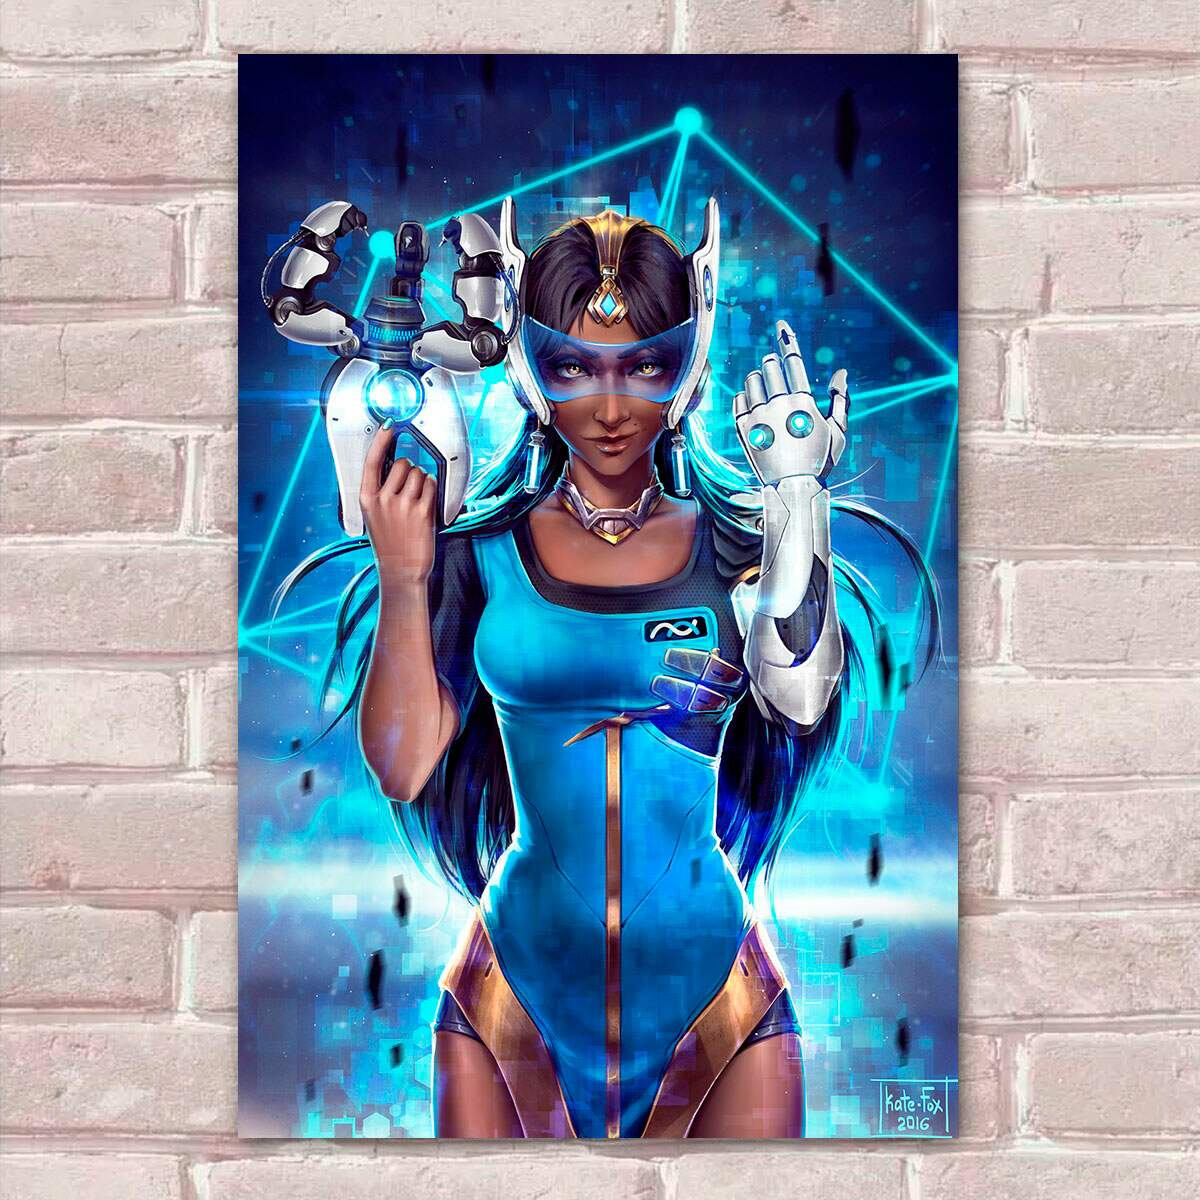 Placa Decorativa Overwatch 27